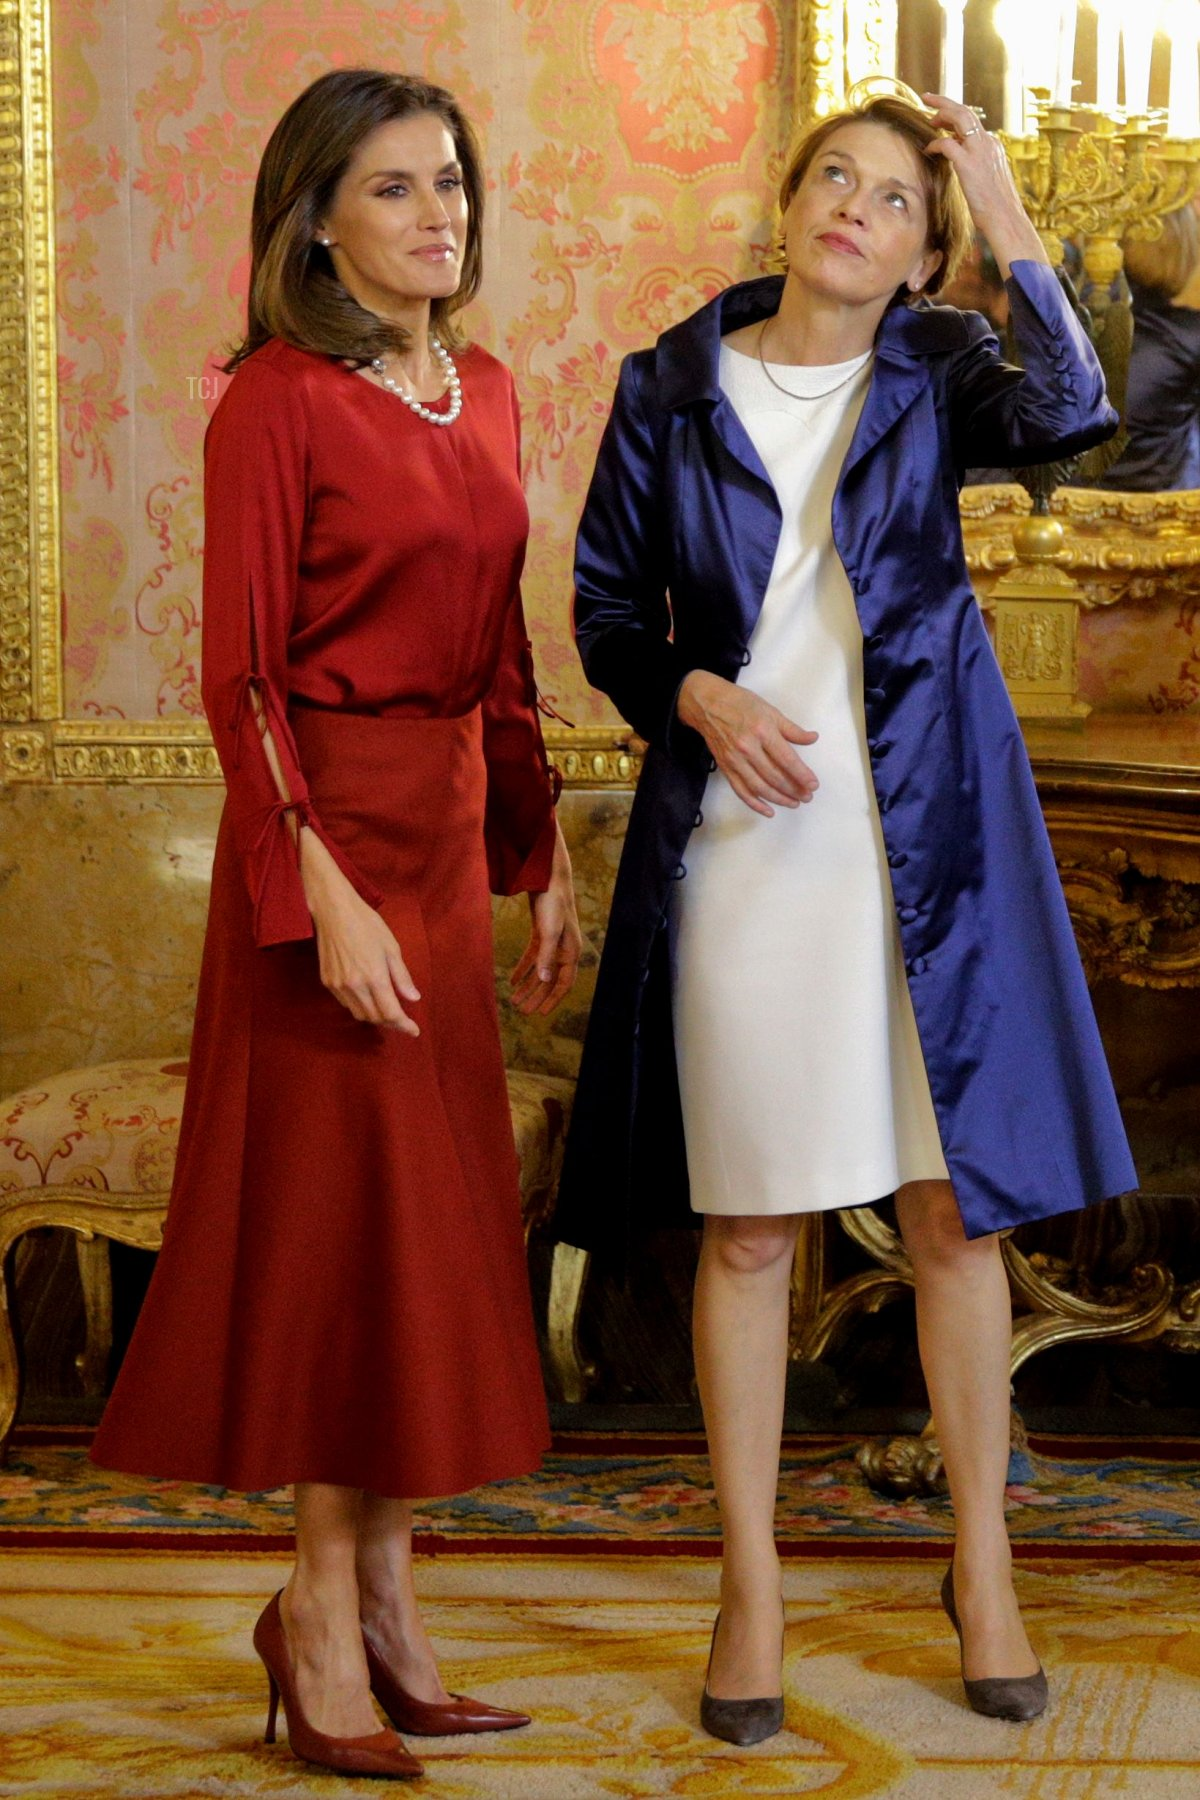 Spain´s Queen Letizia (L) welcomes Elke Budenbende, wife of German President Frank-Walter Steinmeier, at the Royal Palace in Madrid on October 24, 2018